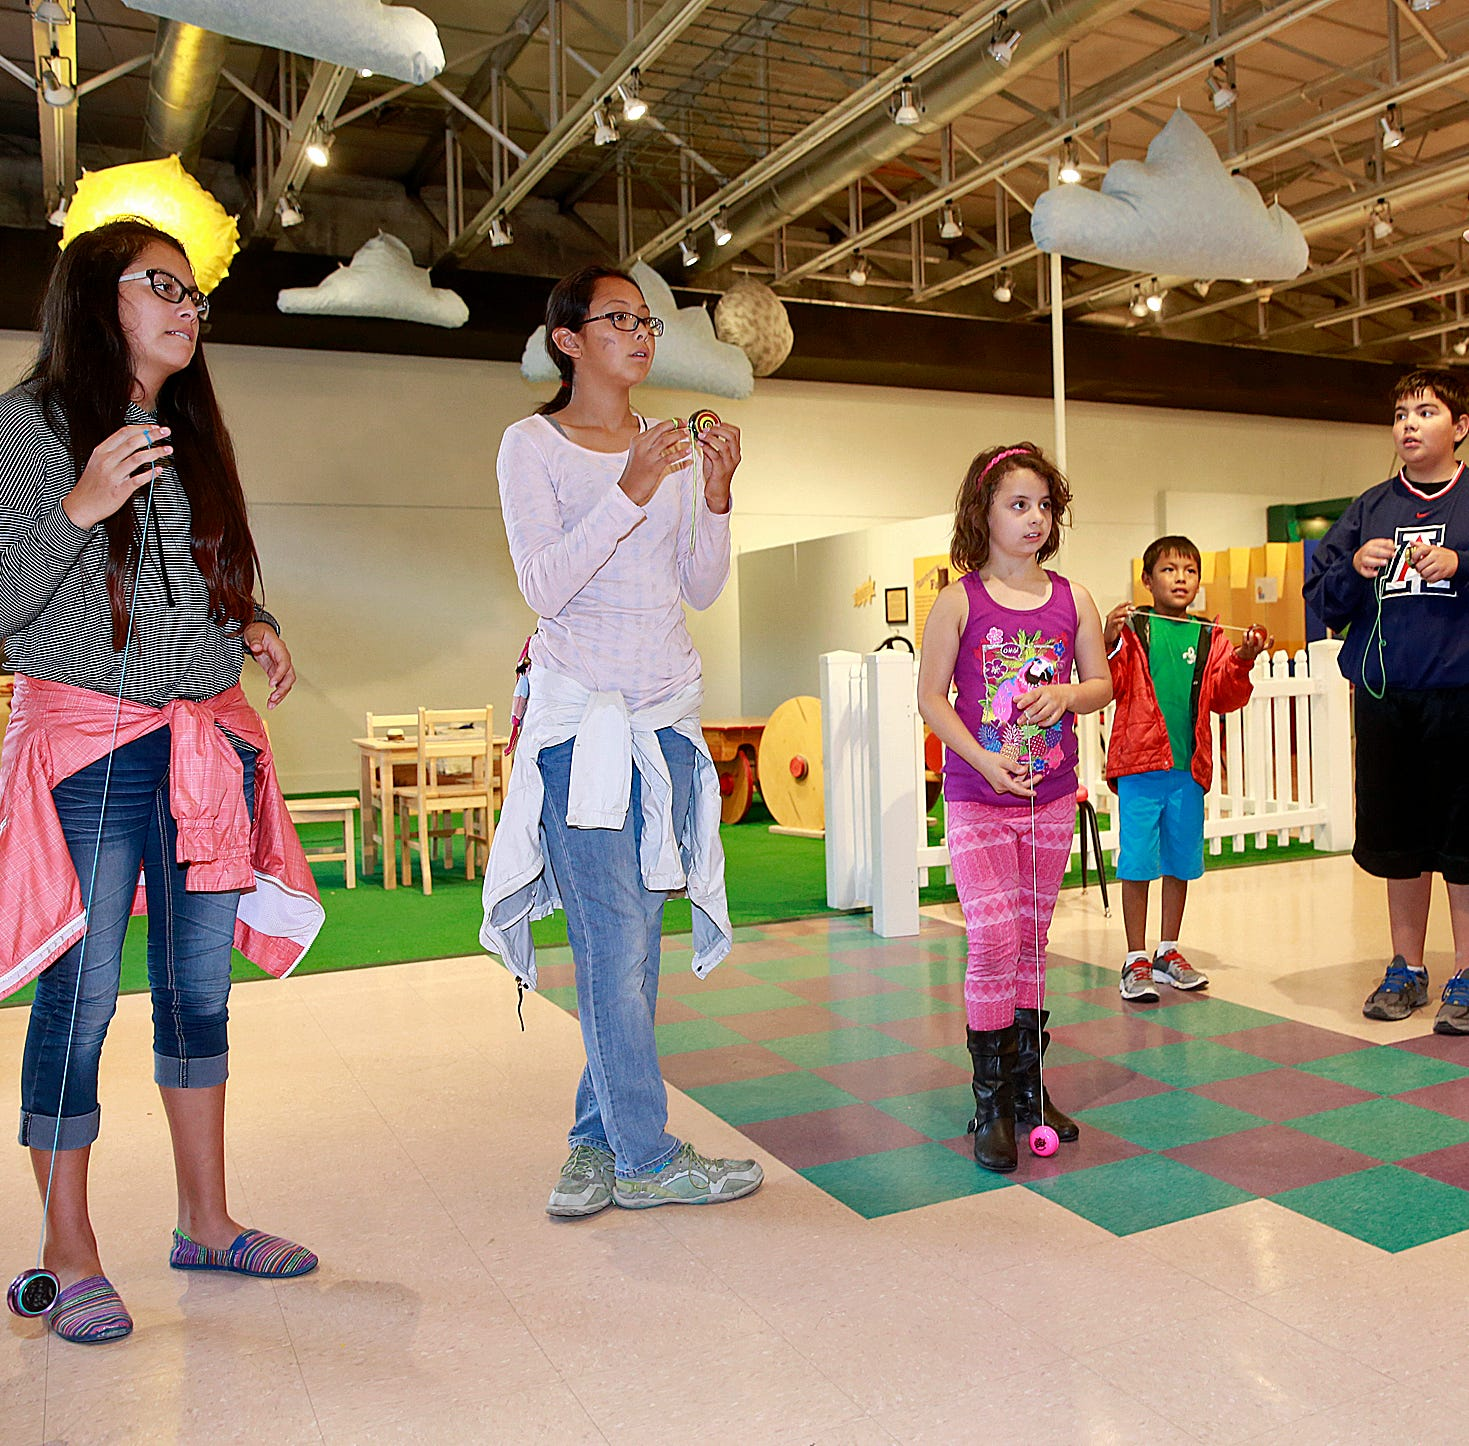 Farmington Indian Center, E3 Children's Museum could be impacted by budget cuts